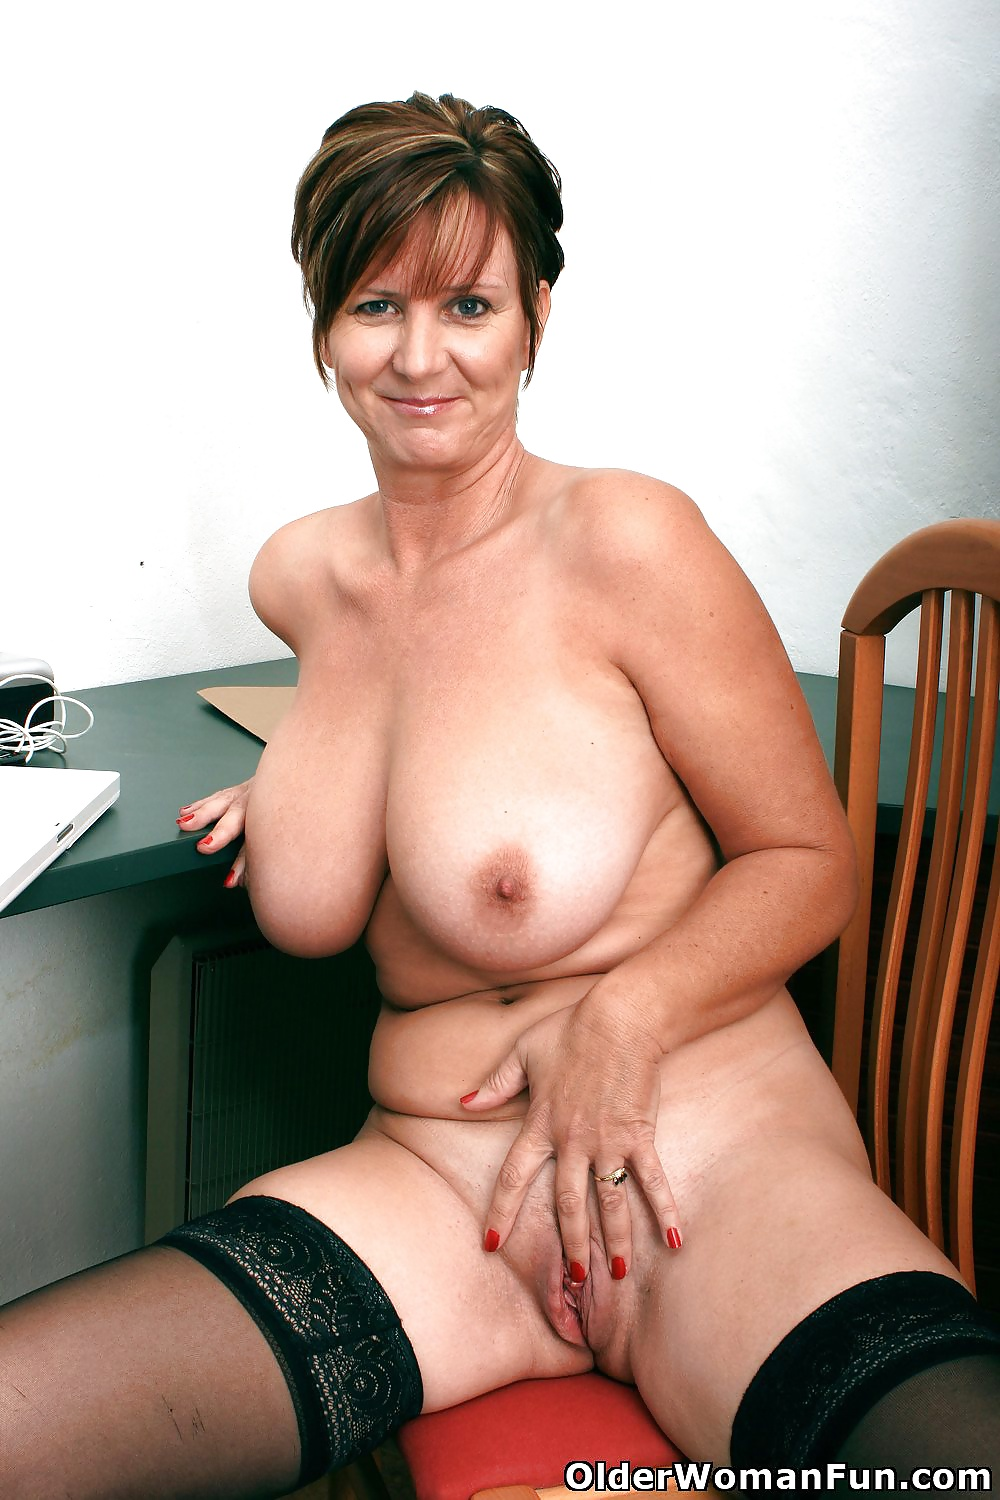 Opinion Mature granny joy porn consider, that